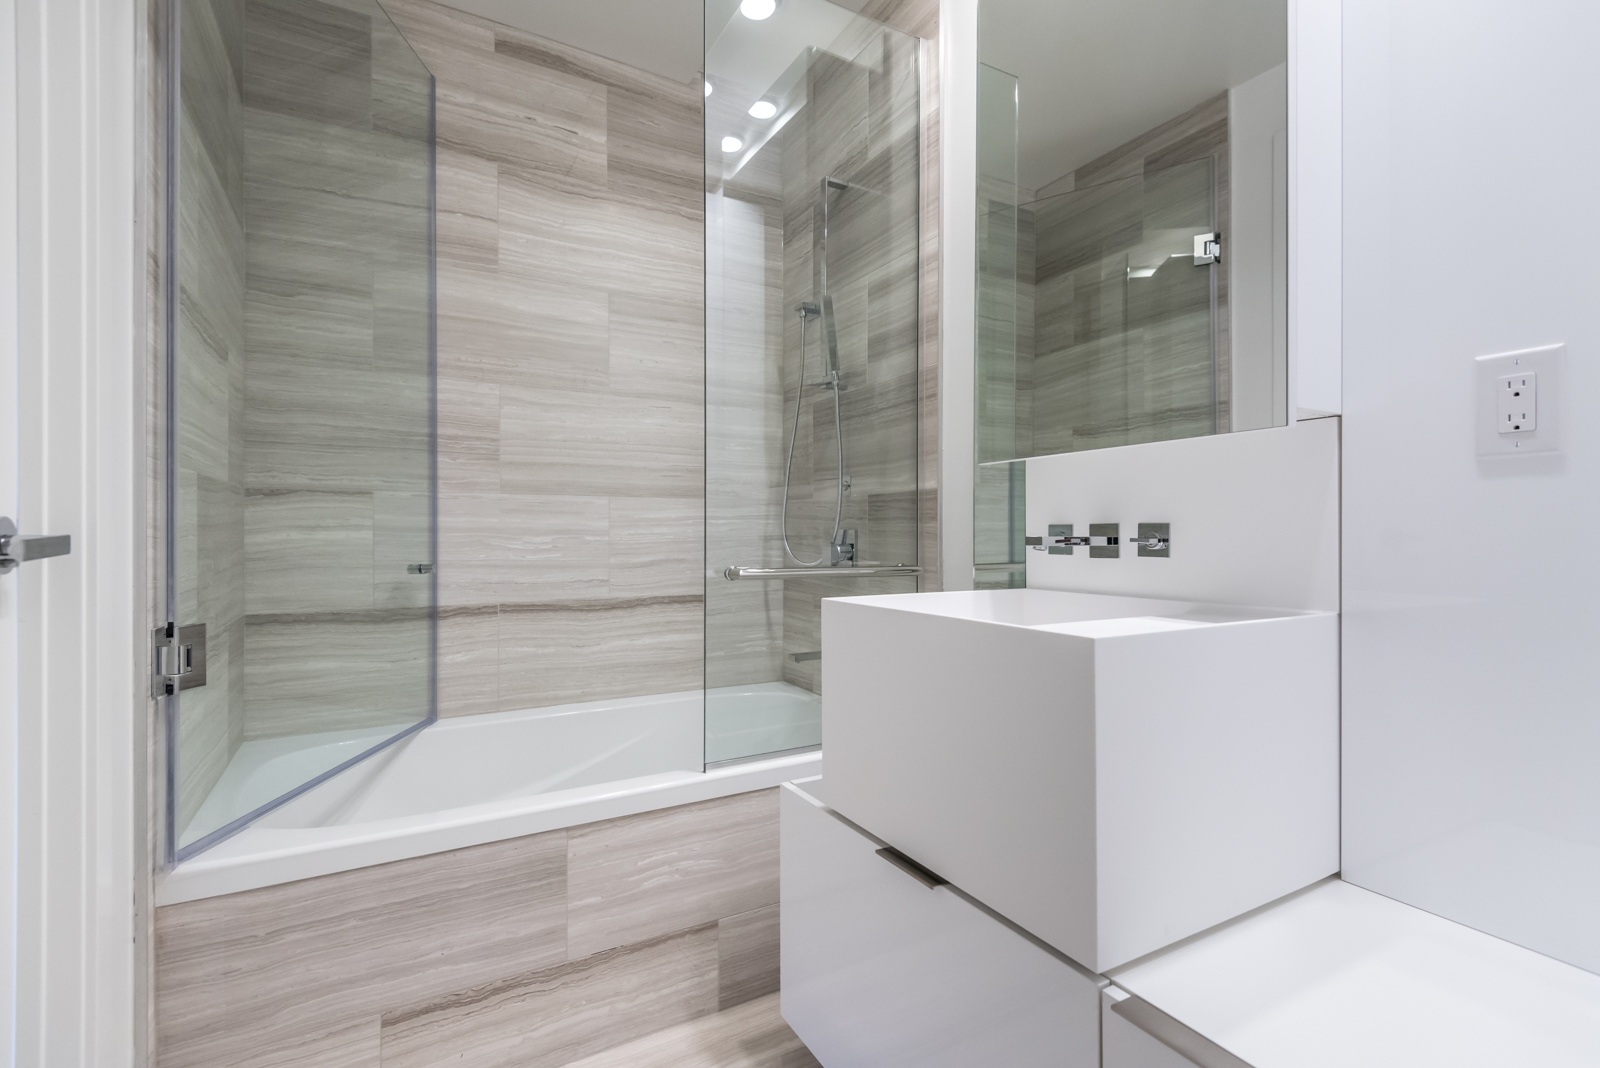 Photo showing 1 Bloor master bathroom. So we see the tub, sink, and shower.